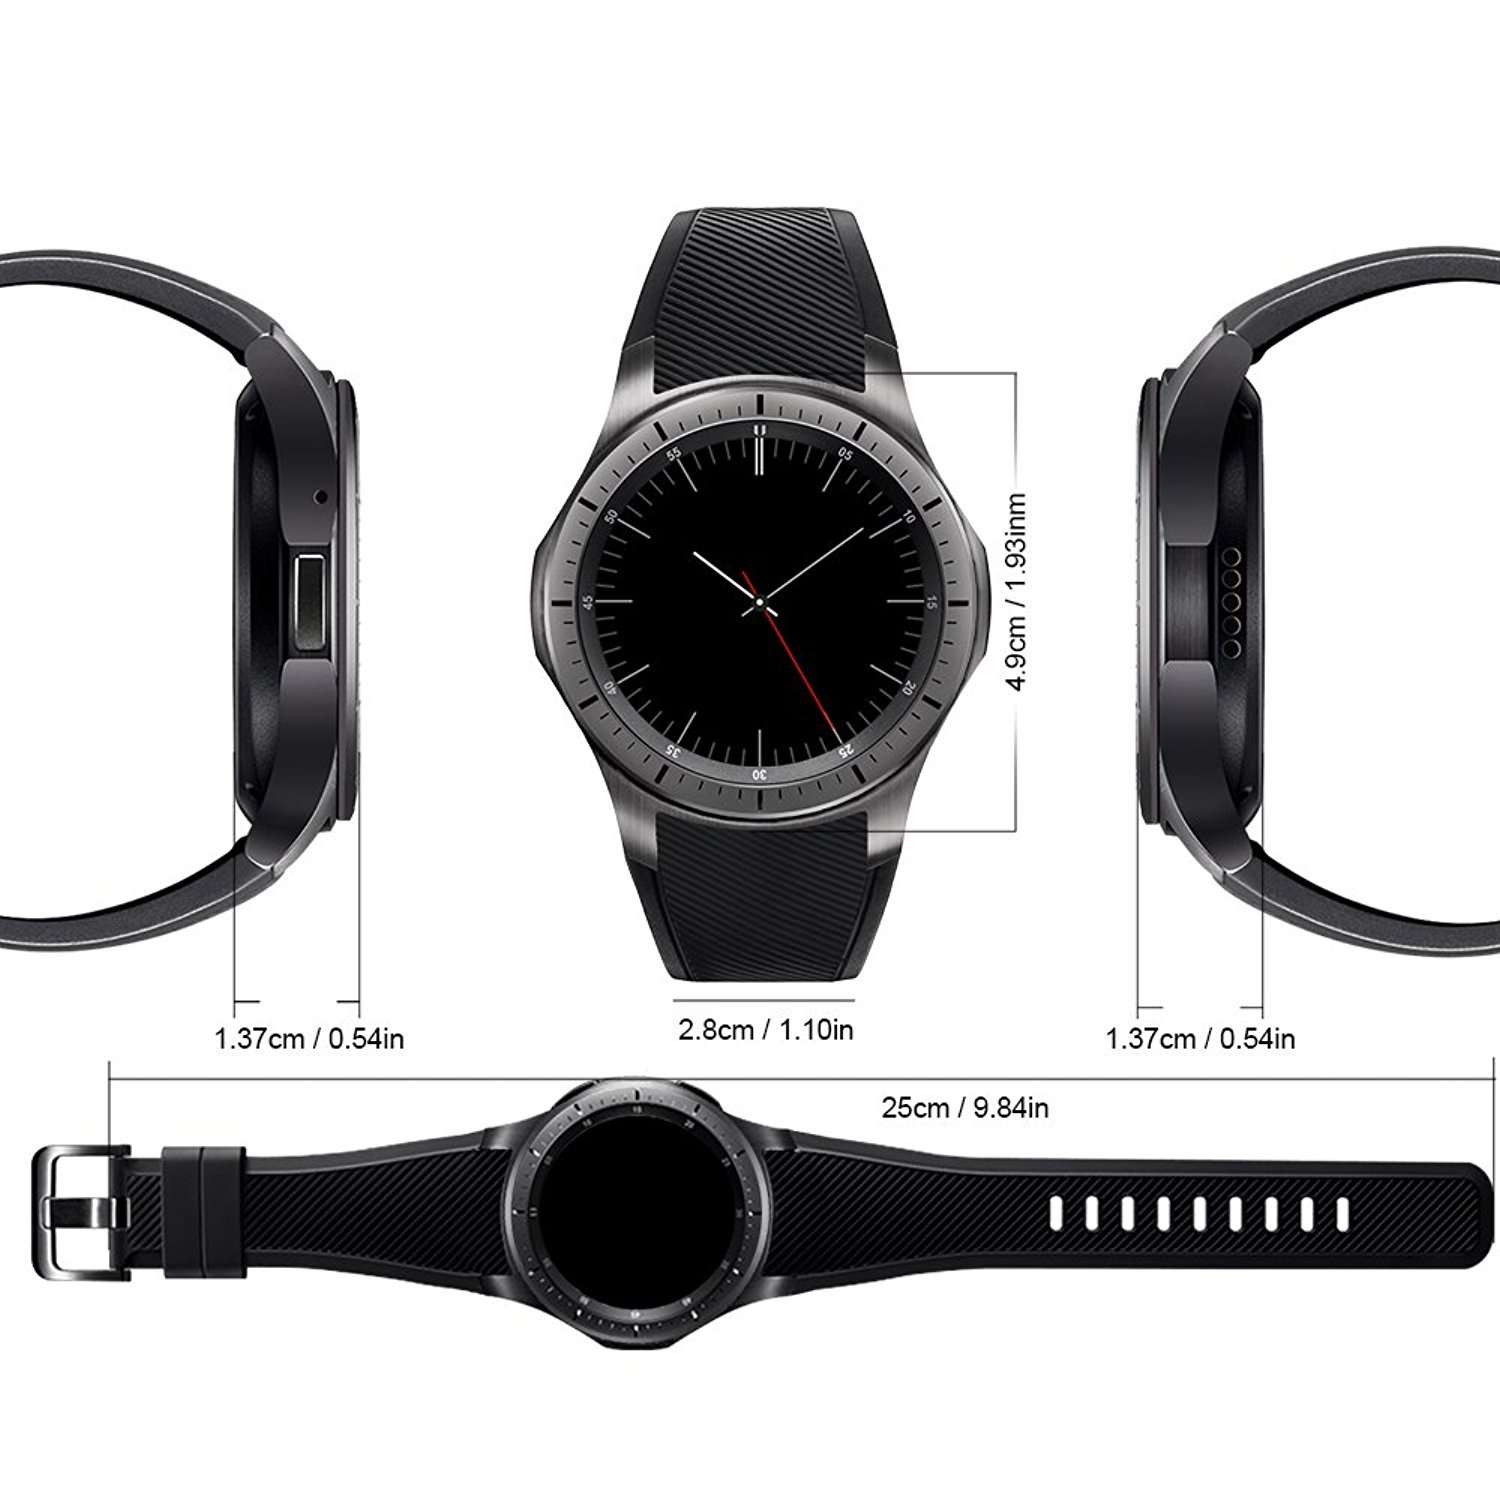 Amazon.com: LEMFO Smart Watch Phone 3G Android 5.1 OS ROM 8G ...